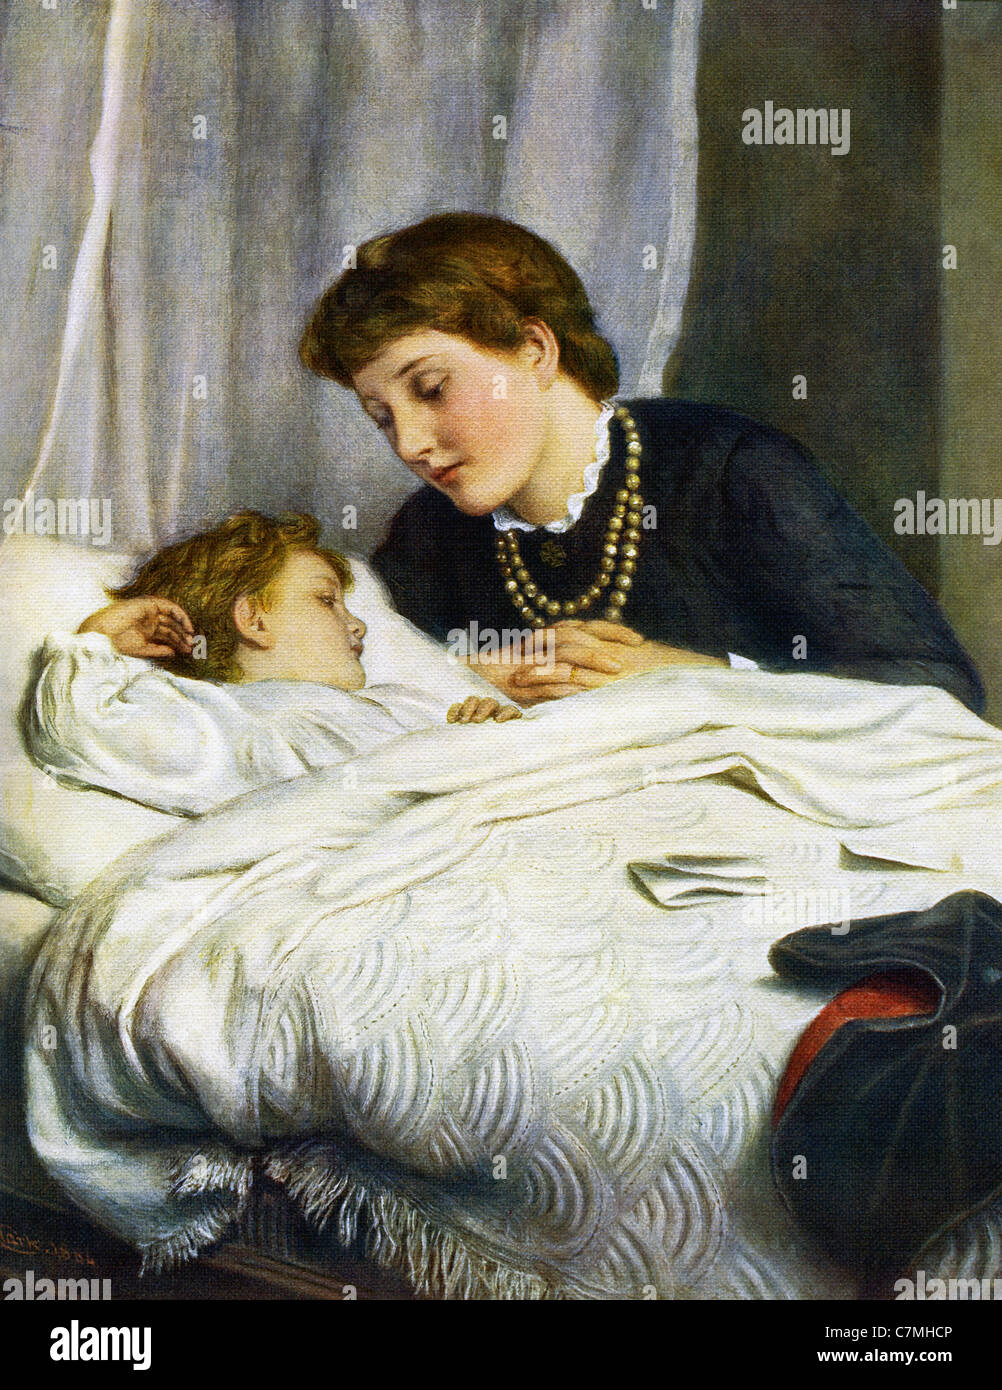 British artist Joseph Clark (1836–1925) specialized in domestic scenes, such as this one titled 'A Mother's - Stock Image